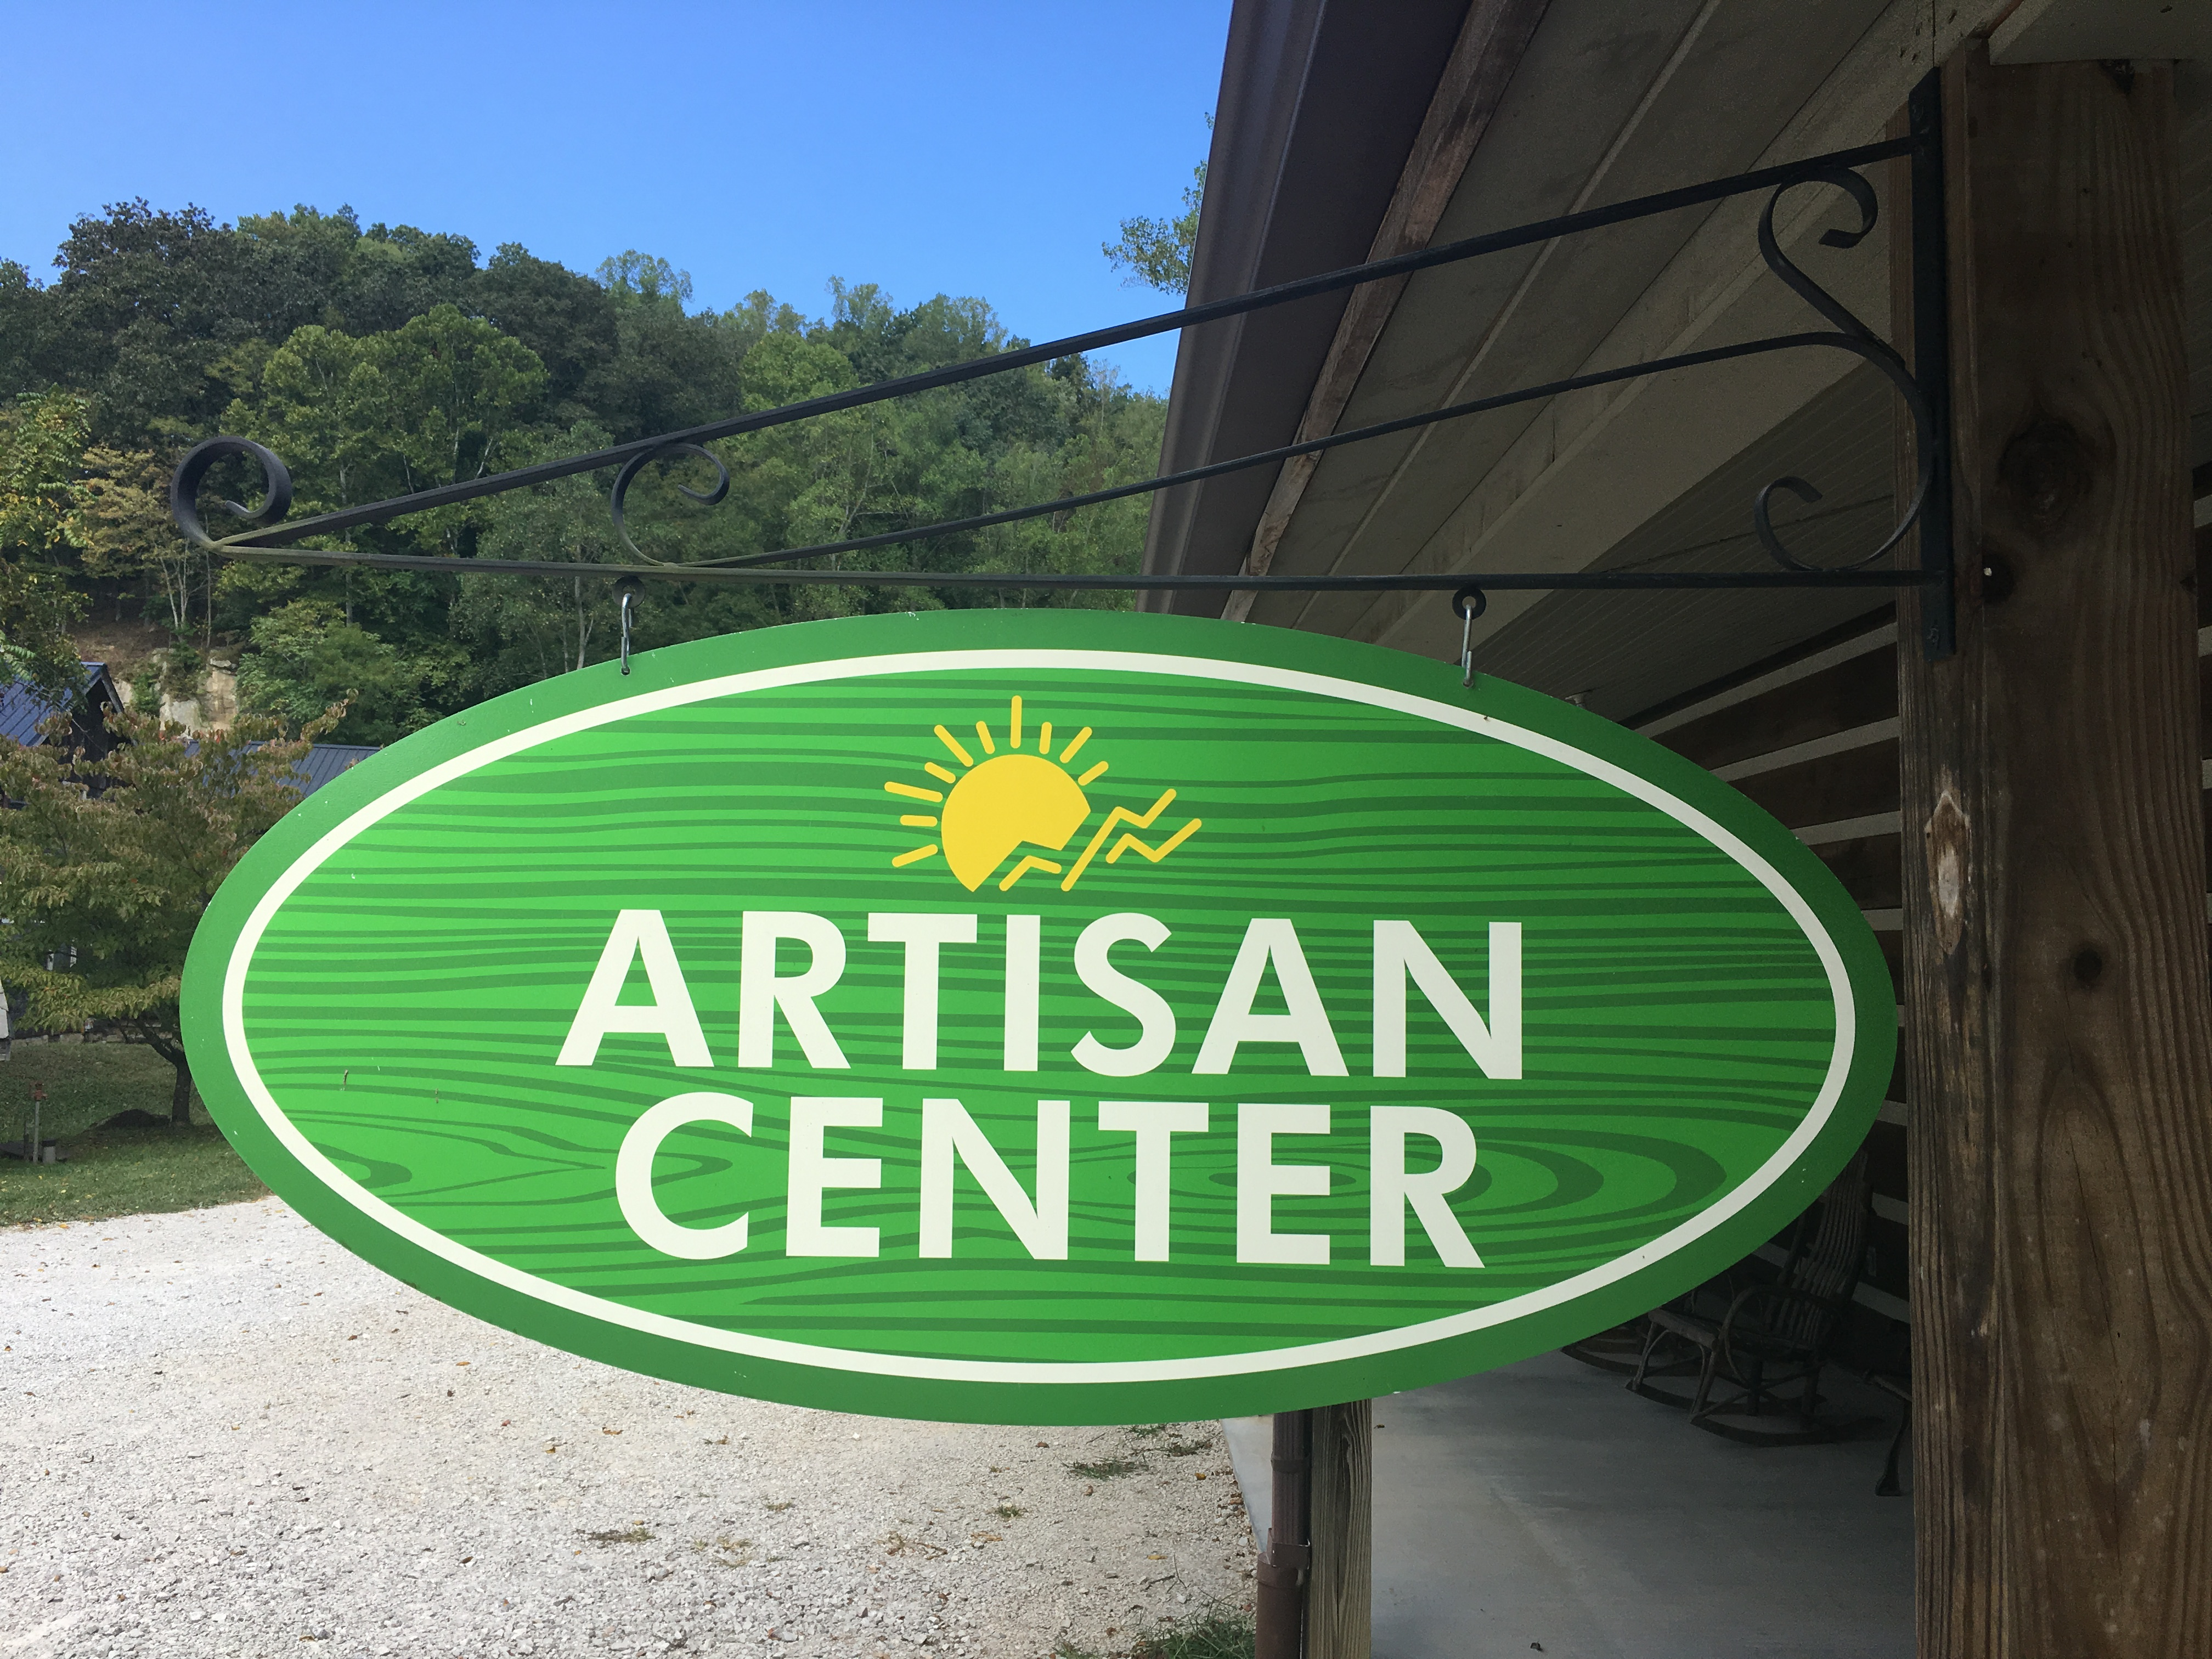 The Artisan Center provides a place for skilled artists to showcase their craftsmanship to the public.